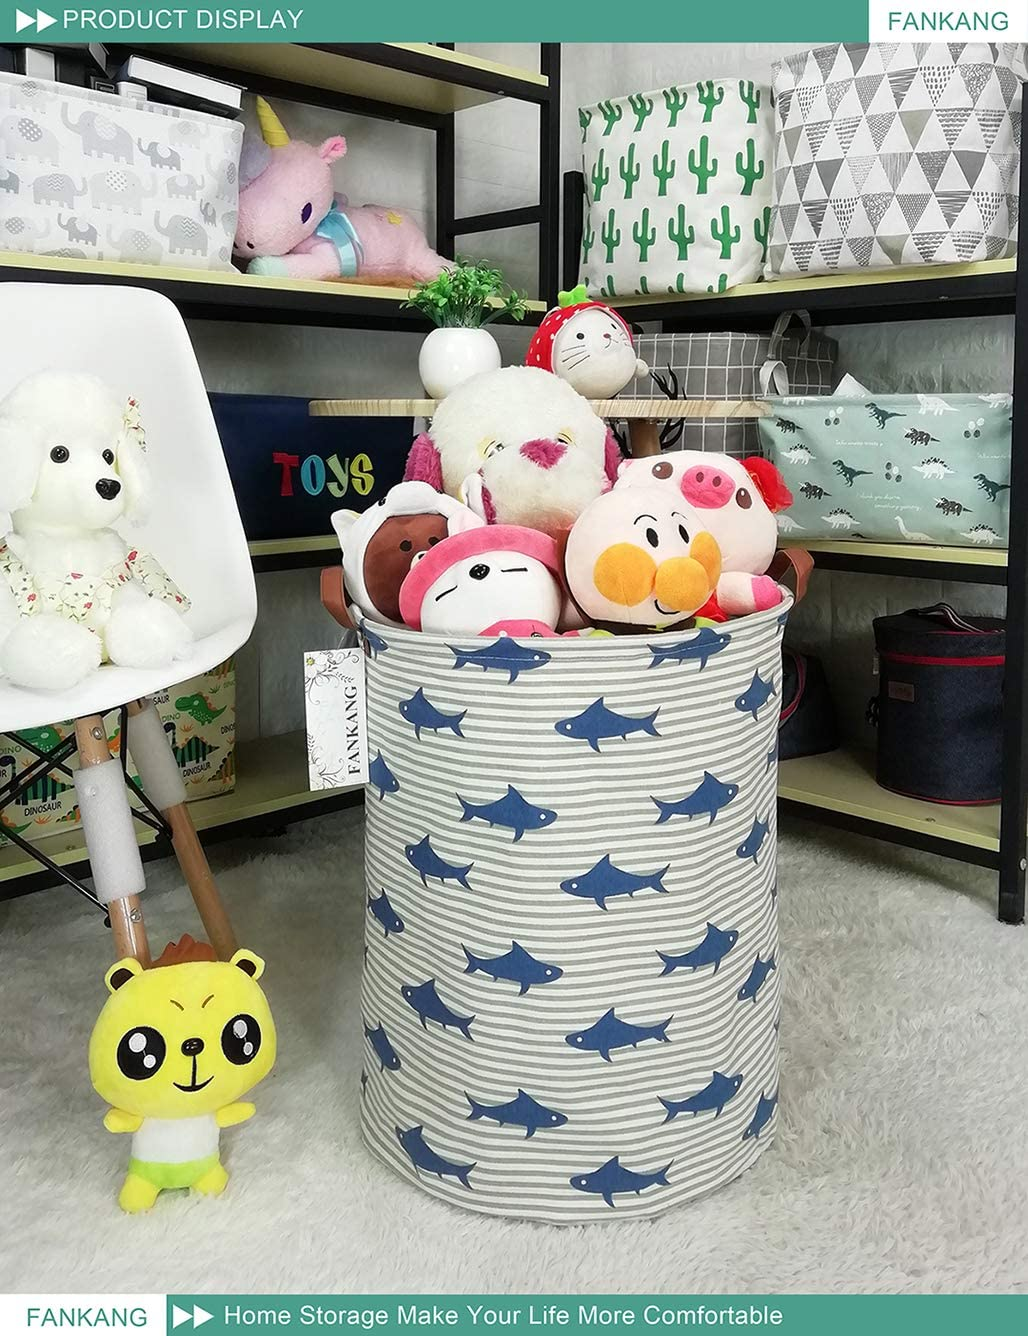 Clothes Bedroom Office FANKANG Storage Bins Nursery Hamper Canvas Laundry Basket Foldable with Waterproof PE Coating Large Storage Baskets Gift for Kids Girl Unicorn Toys Baby Shower Basket